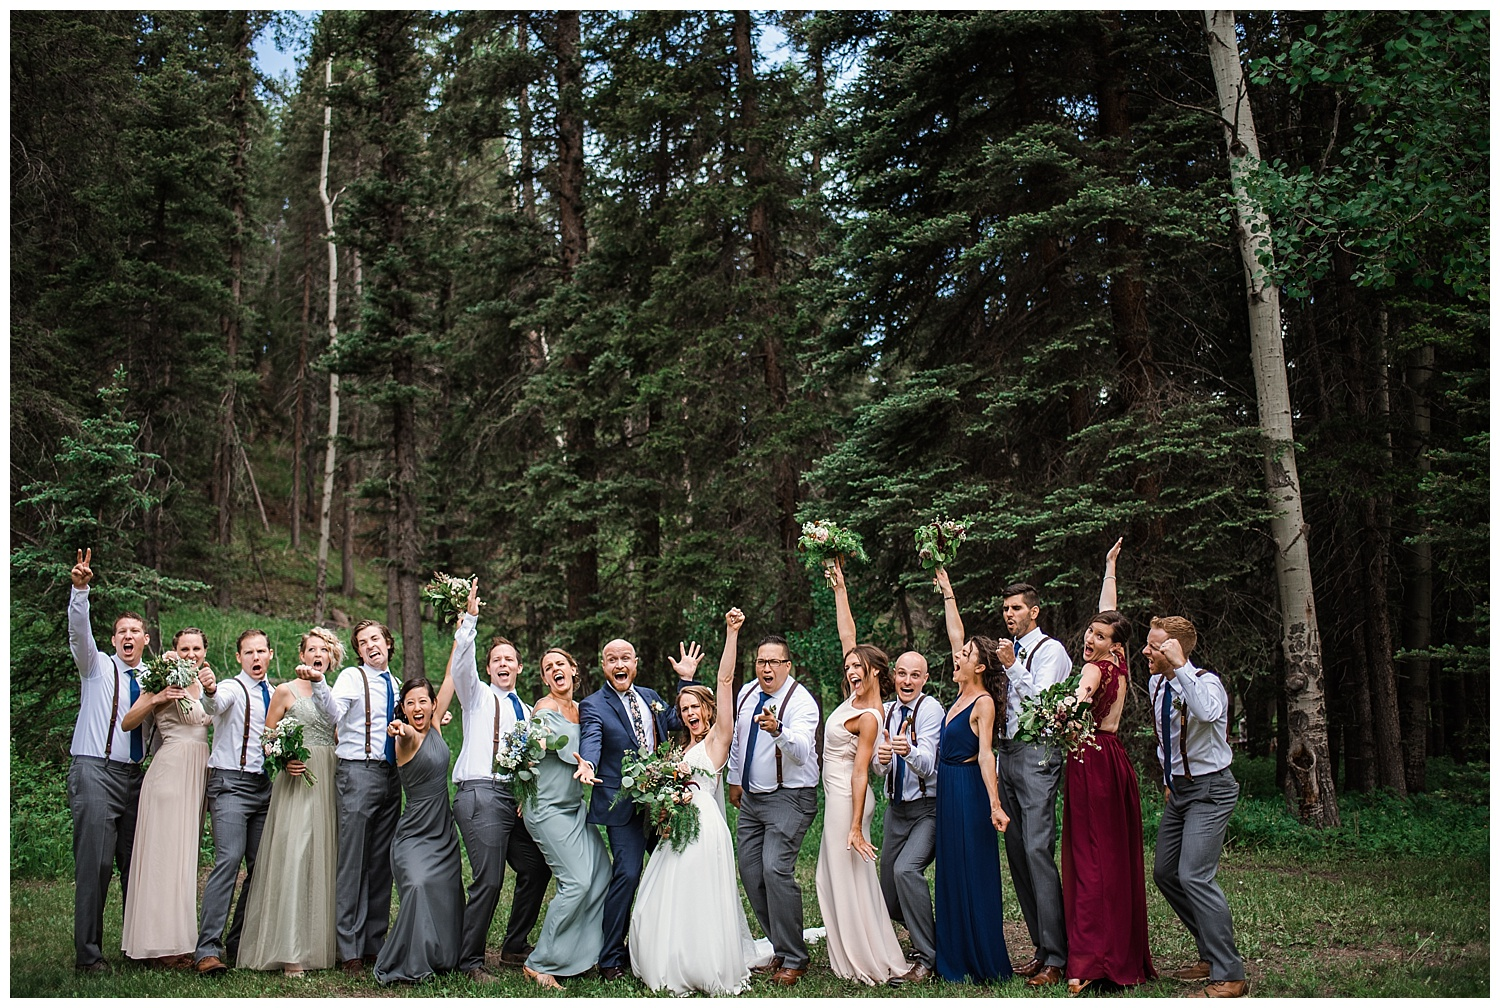 wedding party portraits at Beaver Ranch in Conifer Colorado, Colorado Wedding Photographer, Rocky Mountain Wedding Photographer, Intimate Colorado Wedding Photographer, bridesmaids laughing in jewel toned dresses